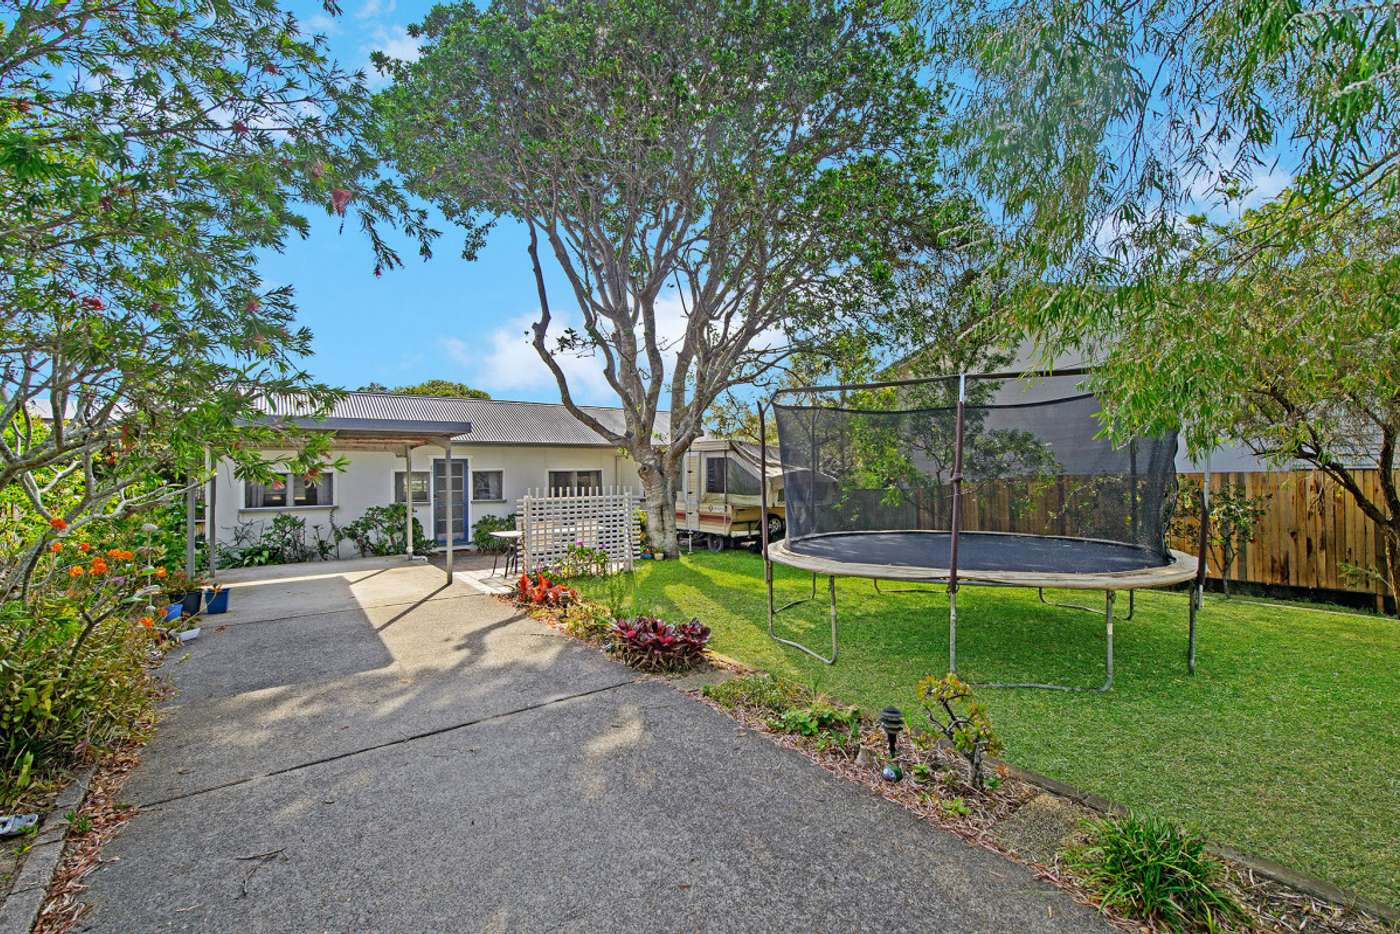 Main view of Homely house listing, 1 Wall Street, North Haven NSW 2443